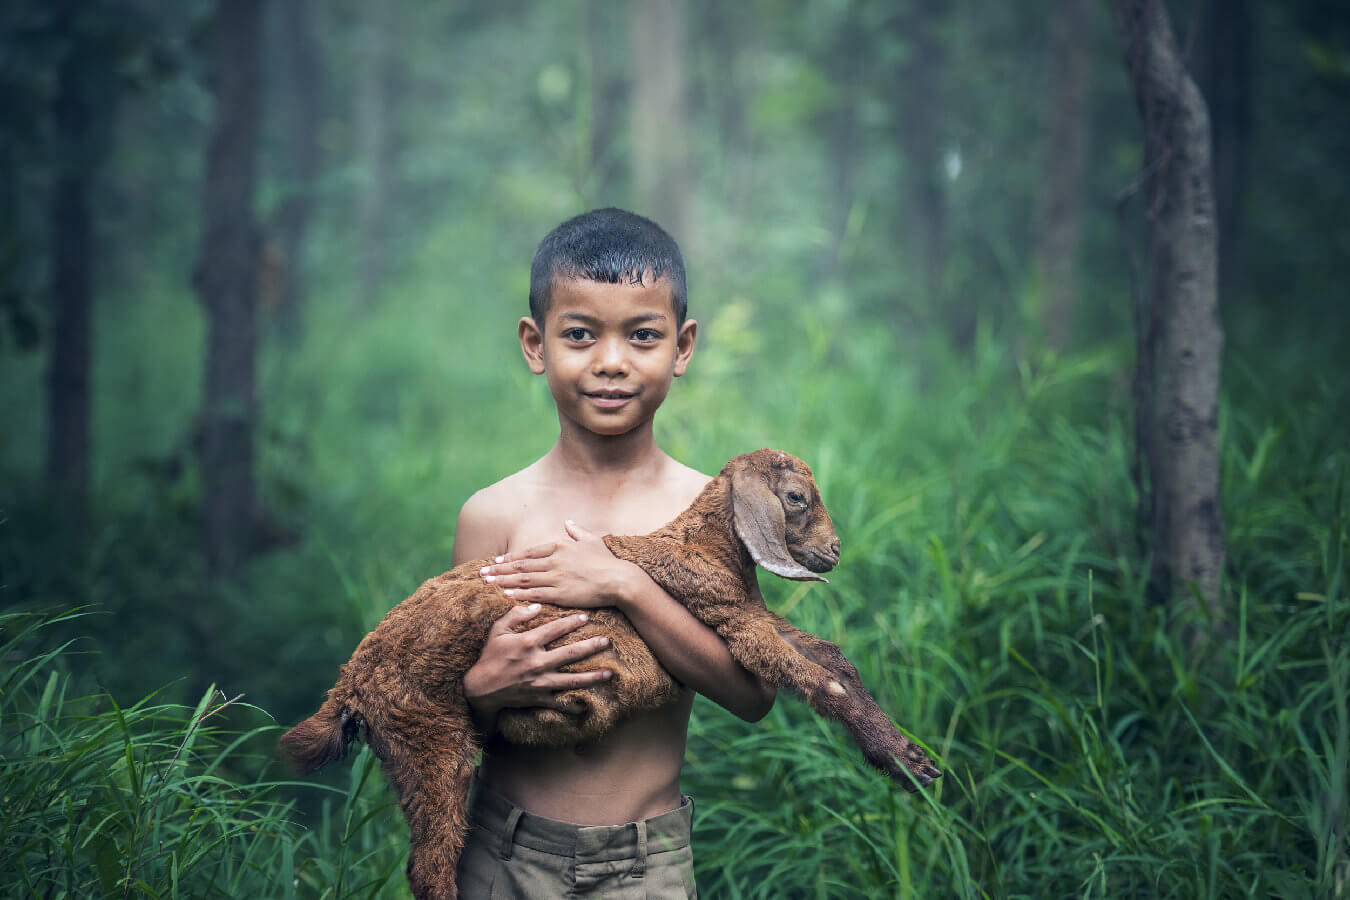 Little Boy with Lamb in His Arm